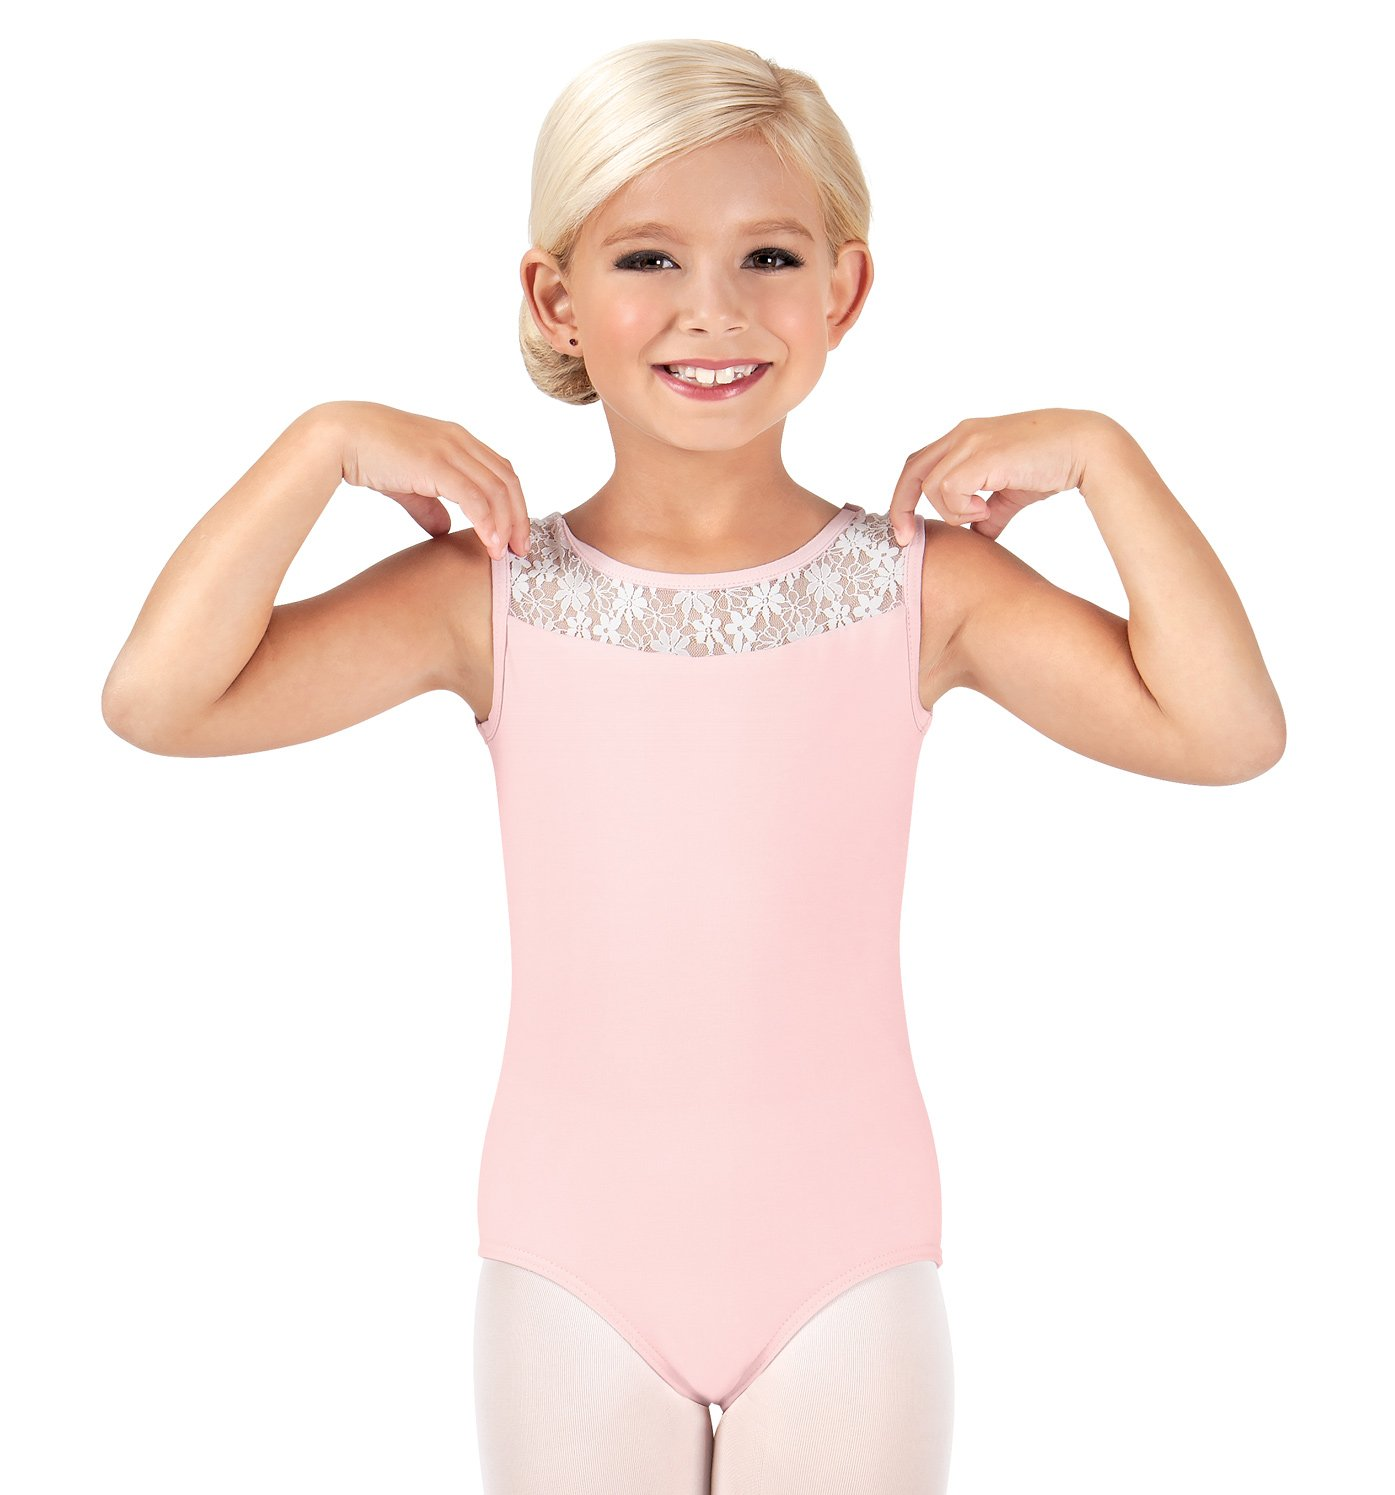 Find great deals on eBay for dancewear. Shop with confidence.